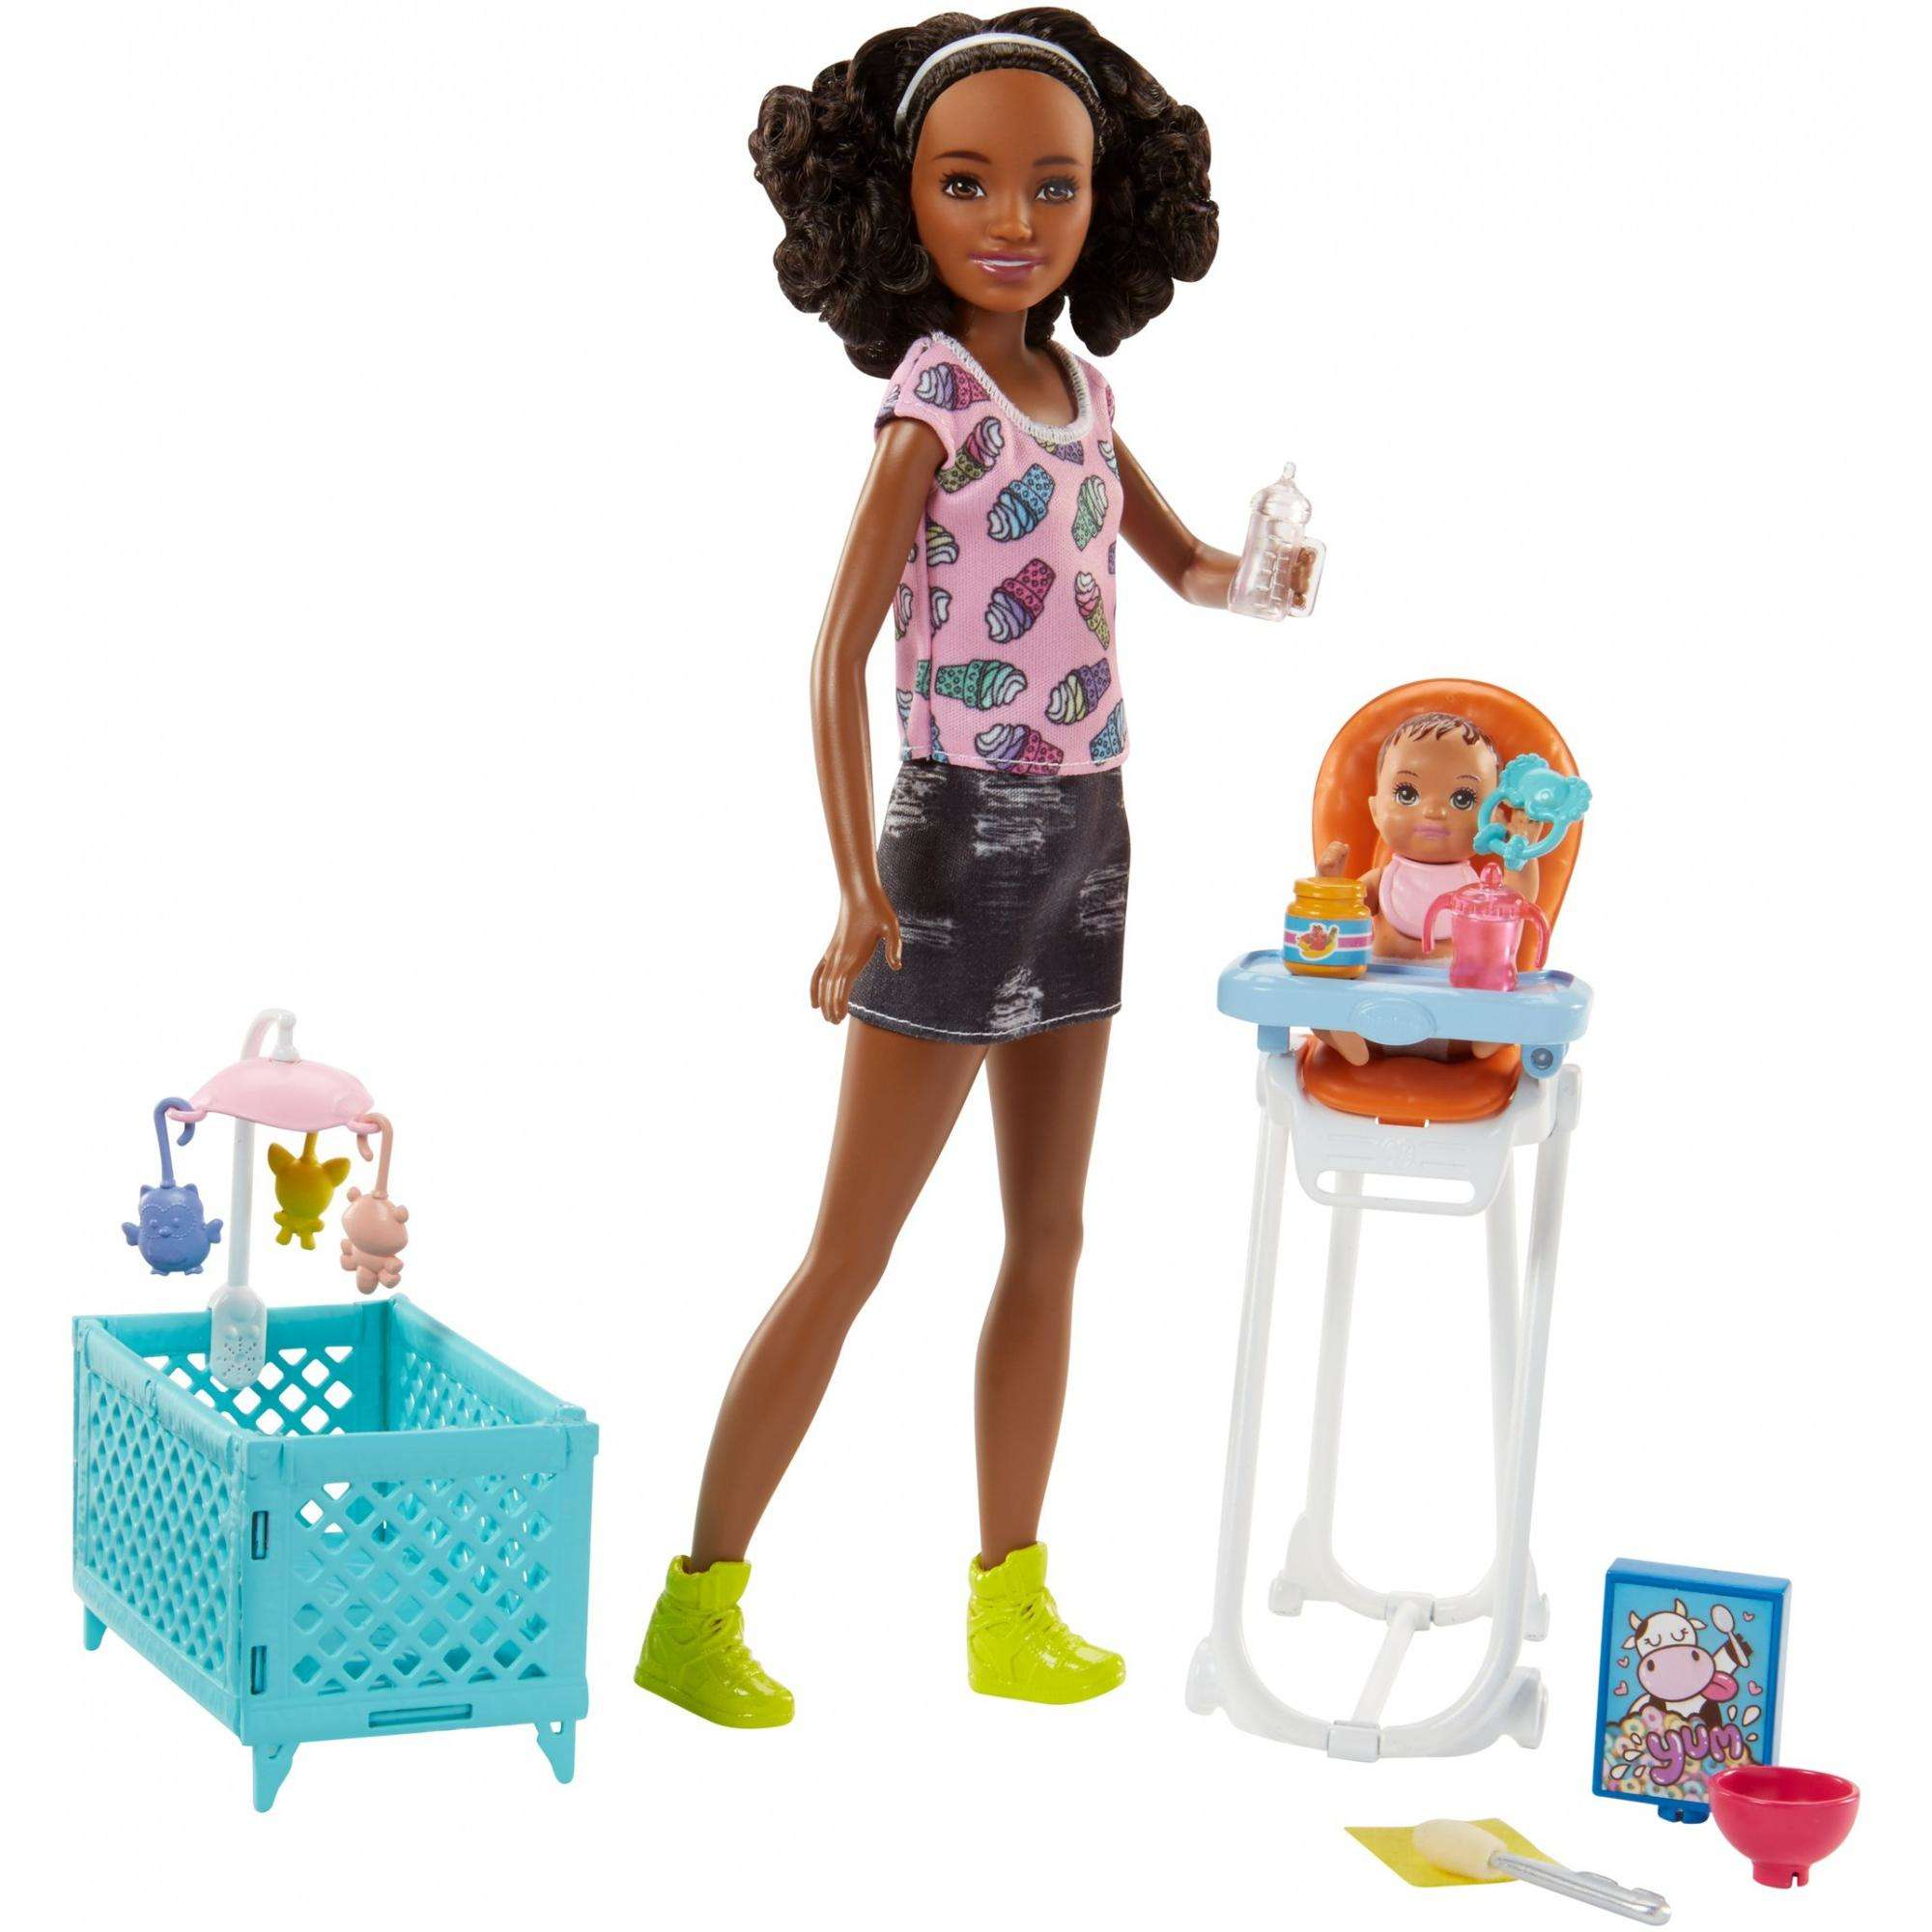 Barbie Babysitters Inc. Nikki Doll and Feeding Playset